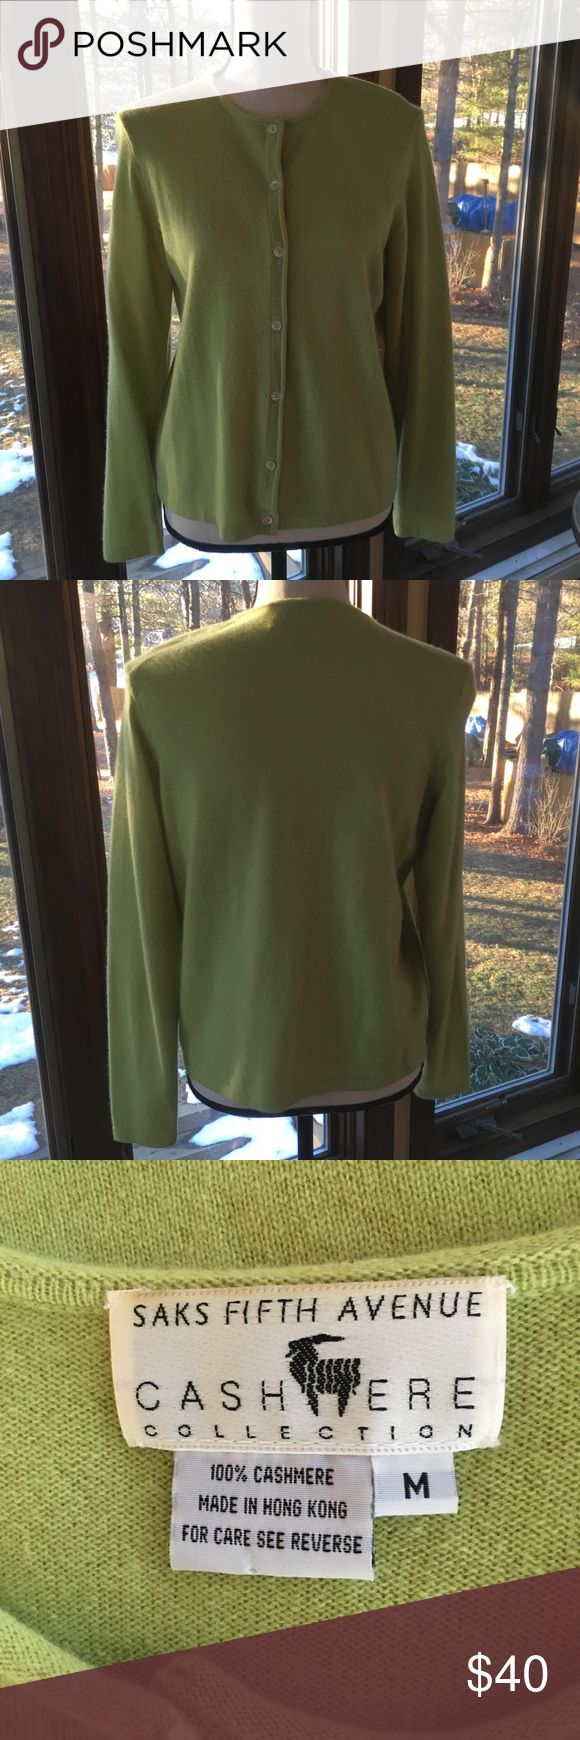 Saks Fifth Avenue Cashmere Cardigan 100% Cashmere Chartreuse green cardigan sweater from Saks Fifth Avenue.  Seven white buttons for closure.  Excellent condition!! Saks Fifth Avenue Sweaters Cardigans